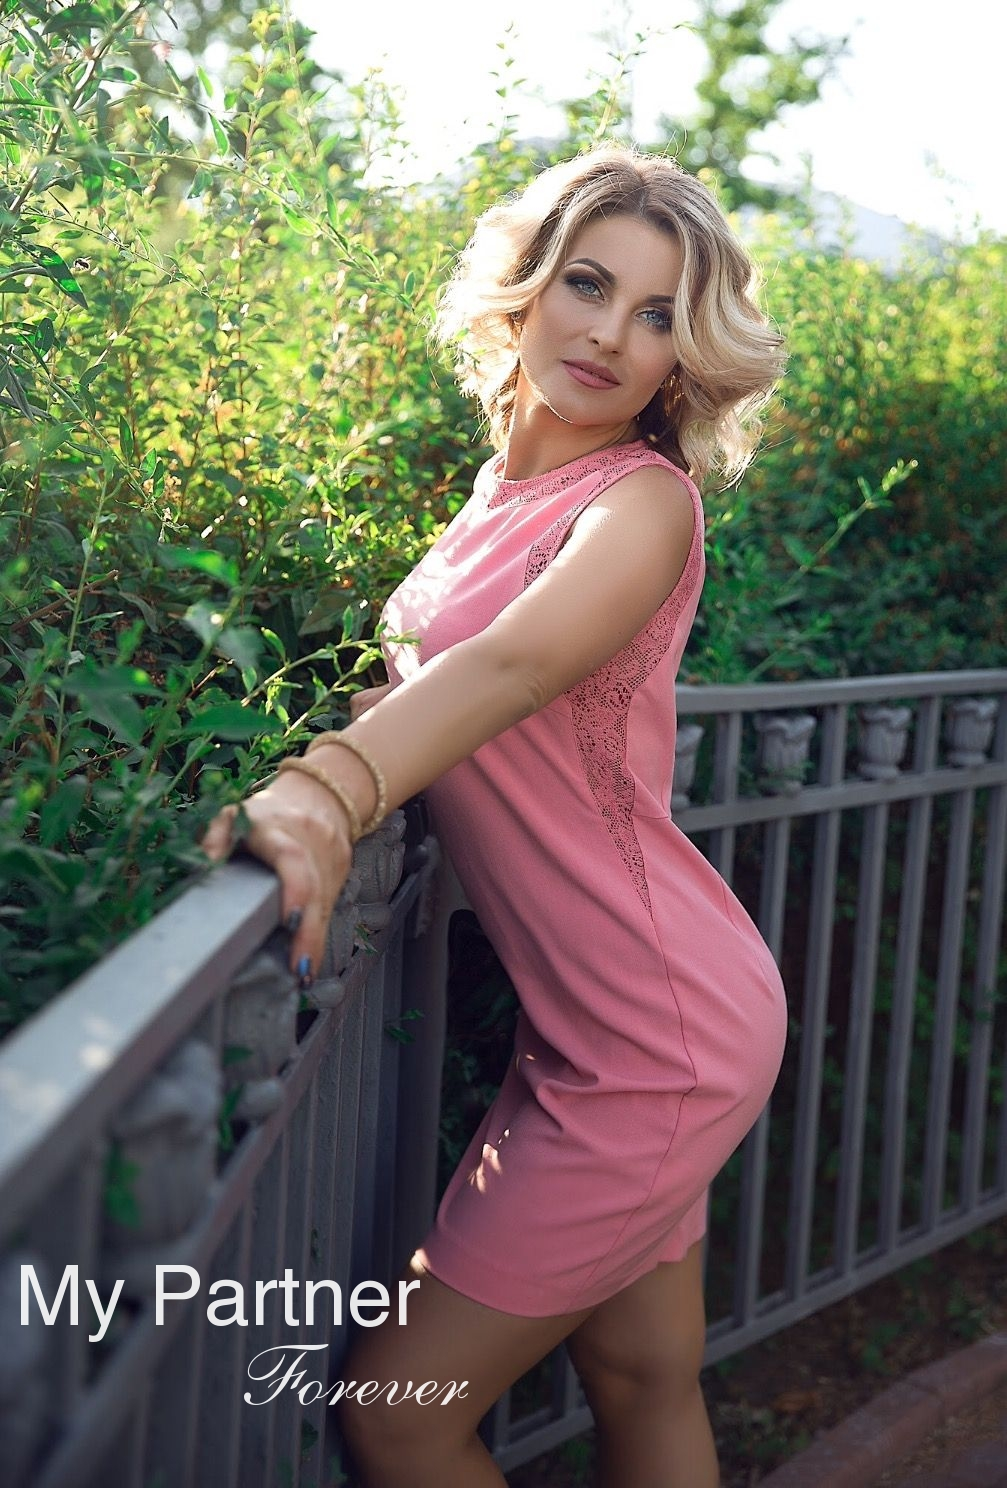 Gorgeous Ukrainian Woman Tatiyana from Poltava, Ukraine